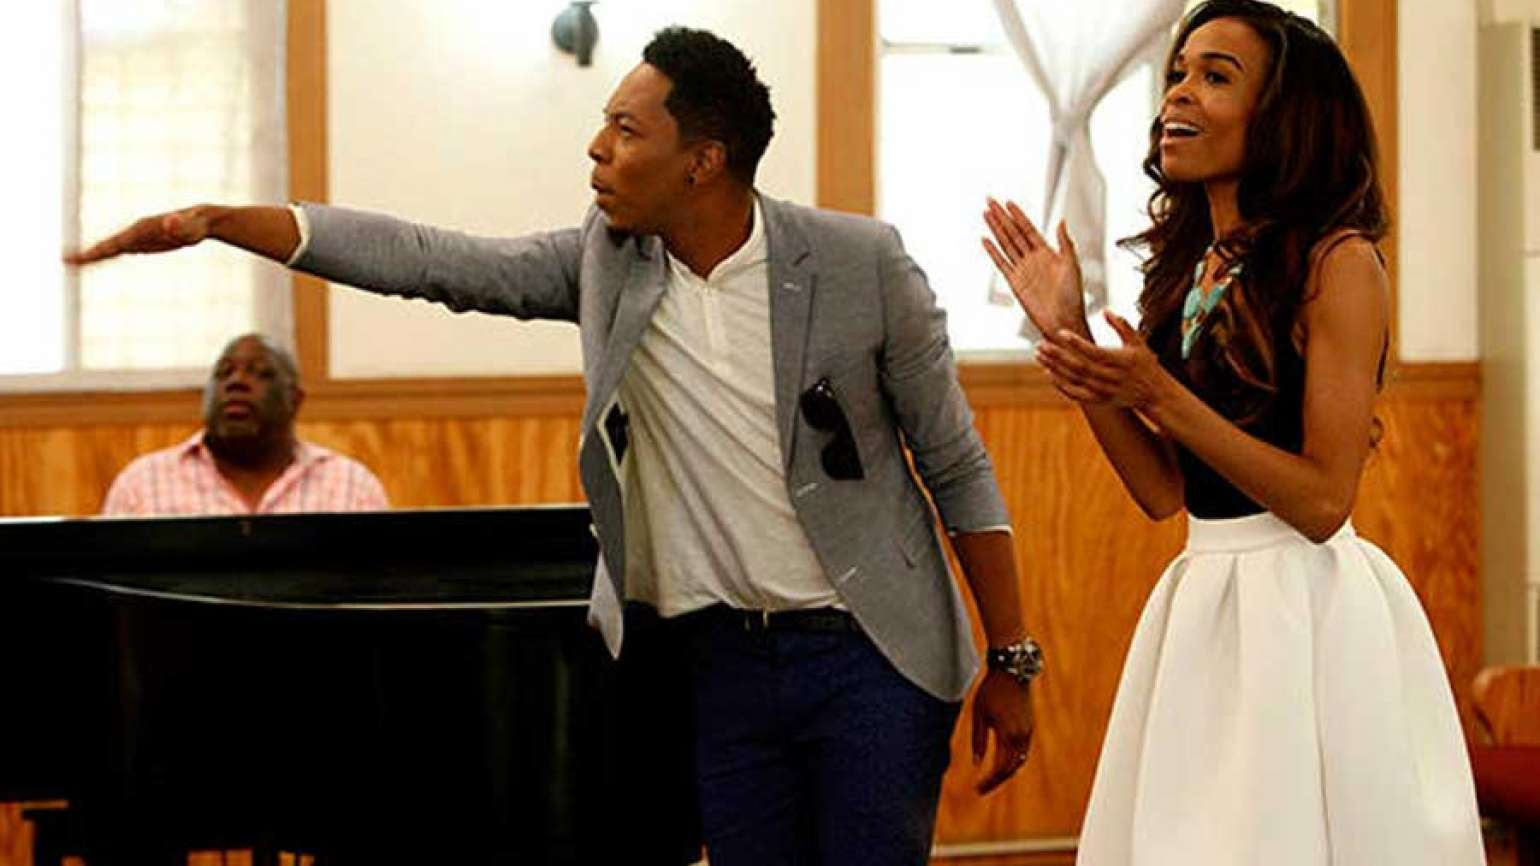 Deitrick Haddon and Michelle Williams on an episode of their show Fix My Choir